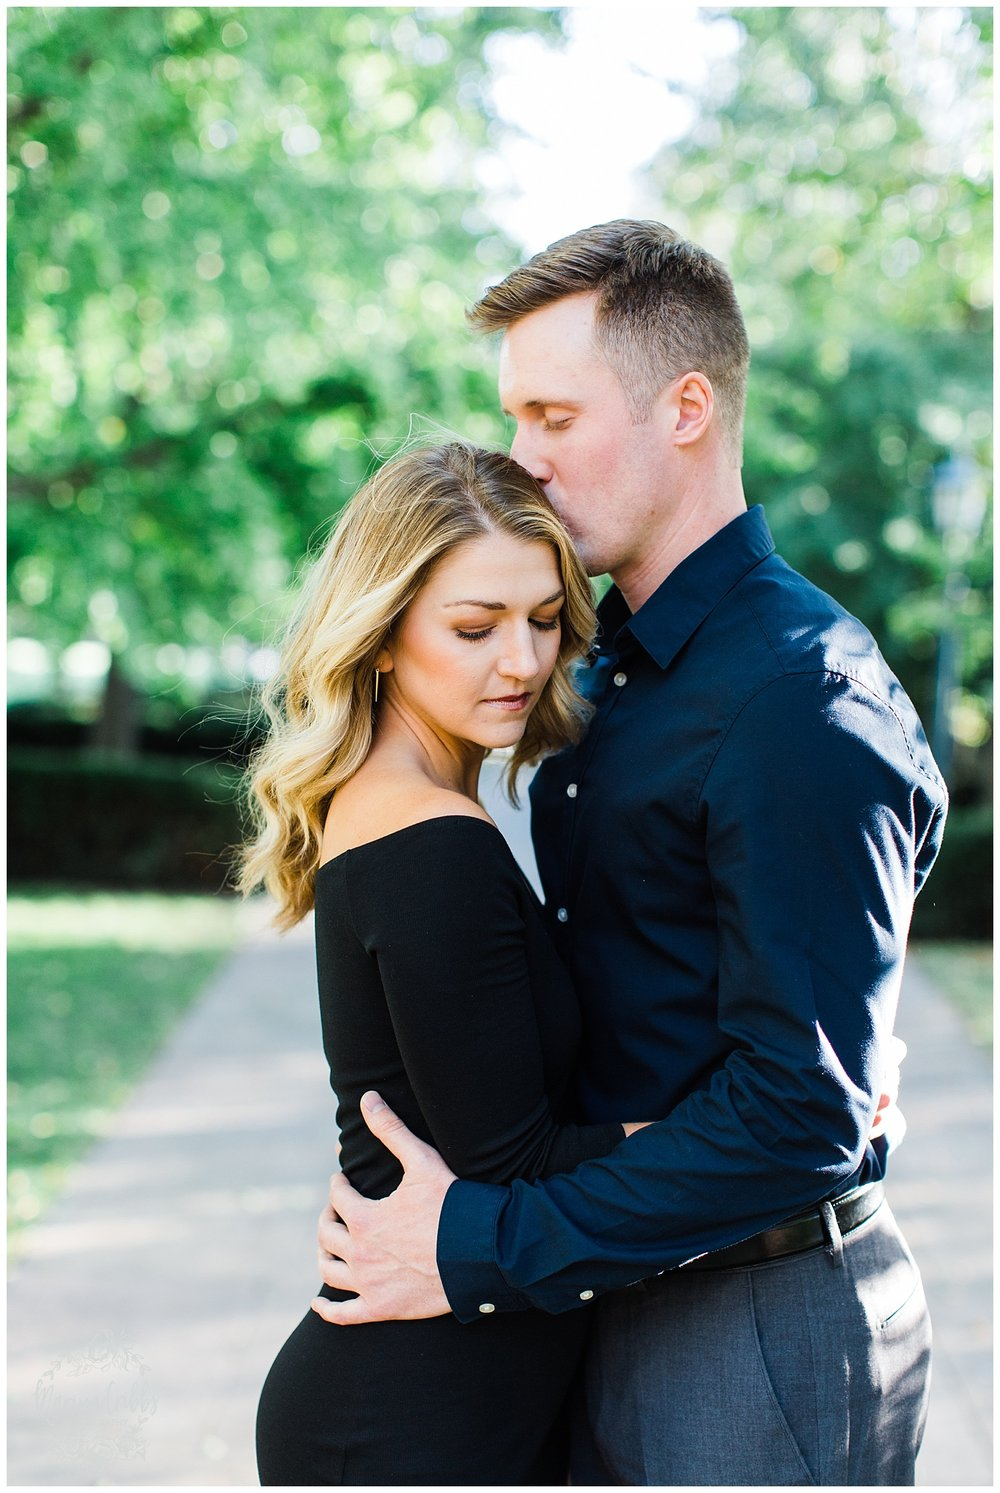 KATE & NATE ENGAGEMENT | NELSON ATKINS | MARISSA CRIBBS PHOTOGRAPHY_3562.jpg